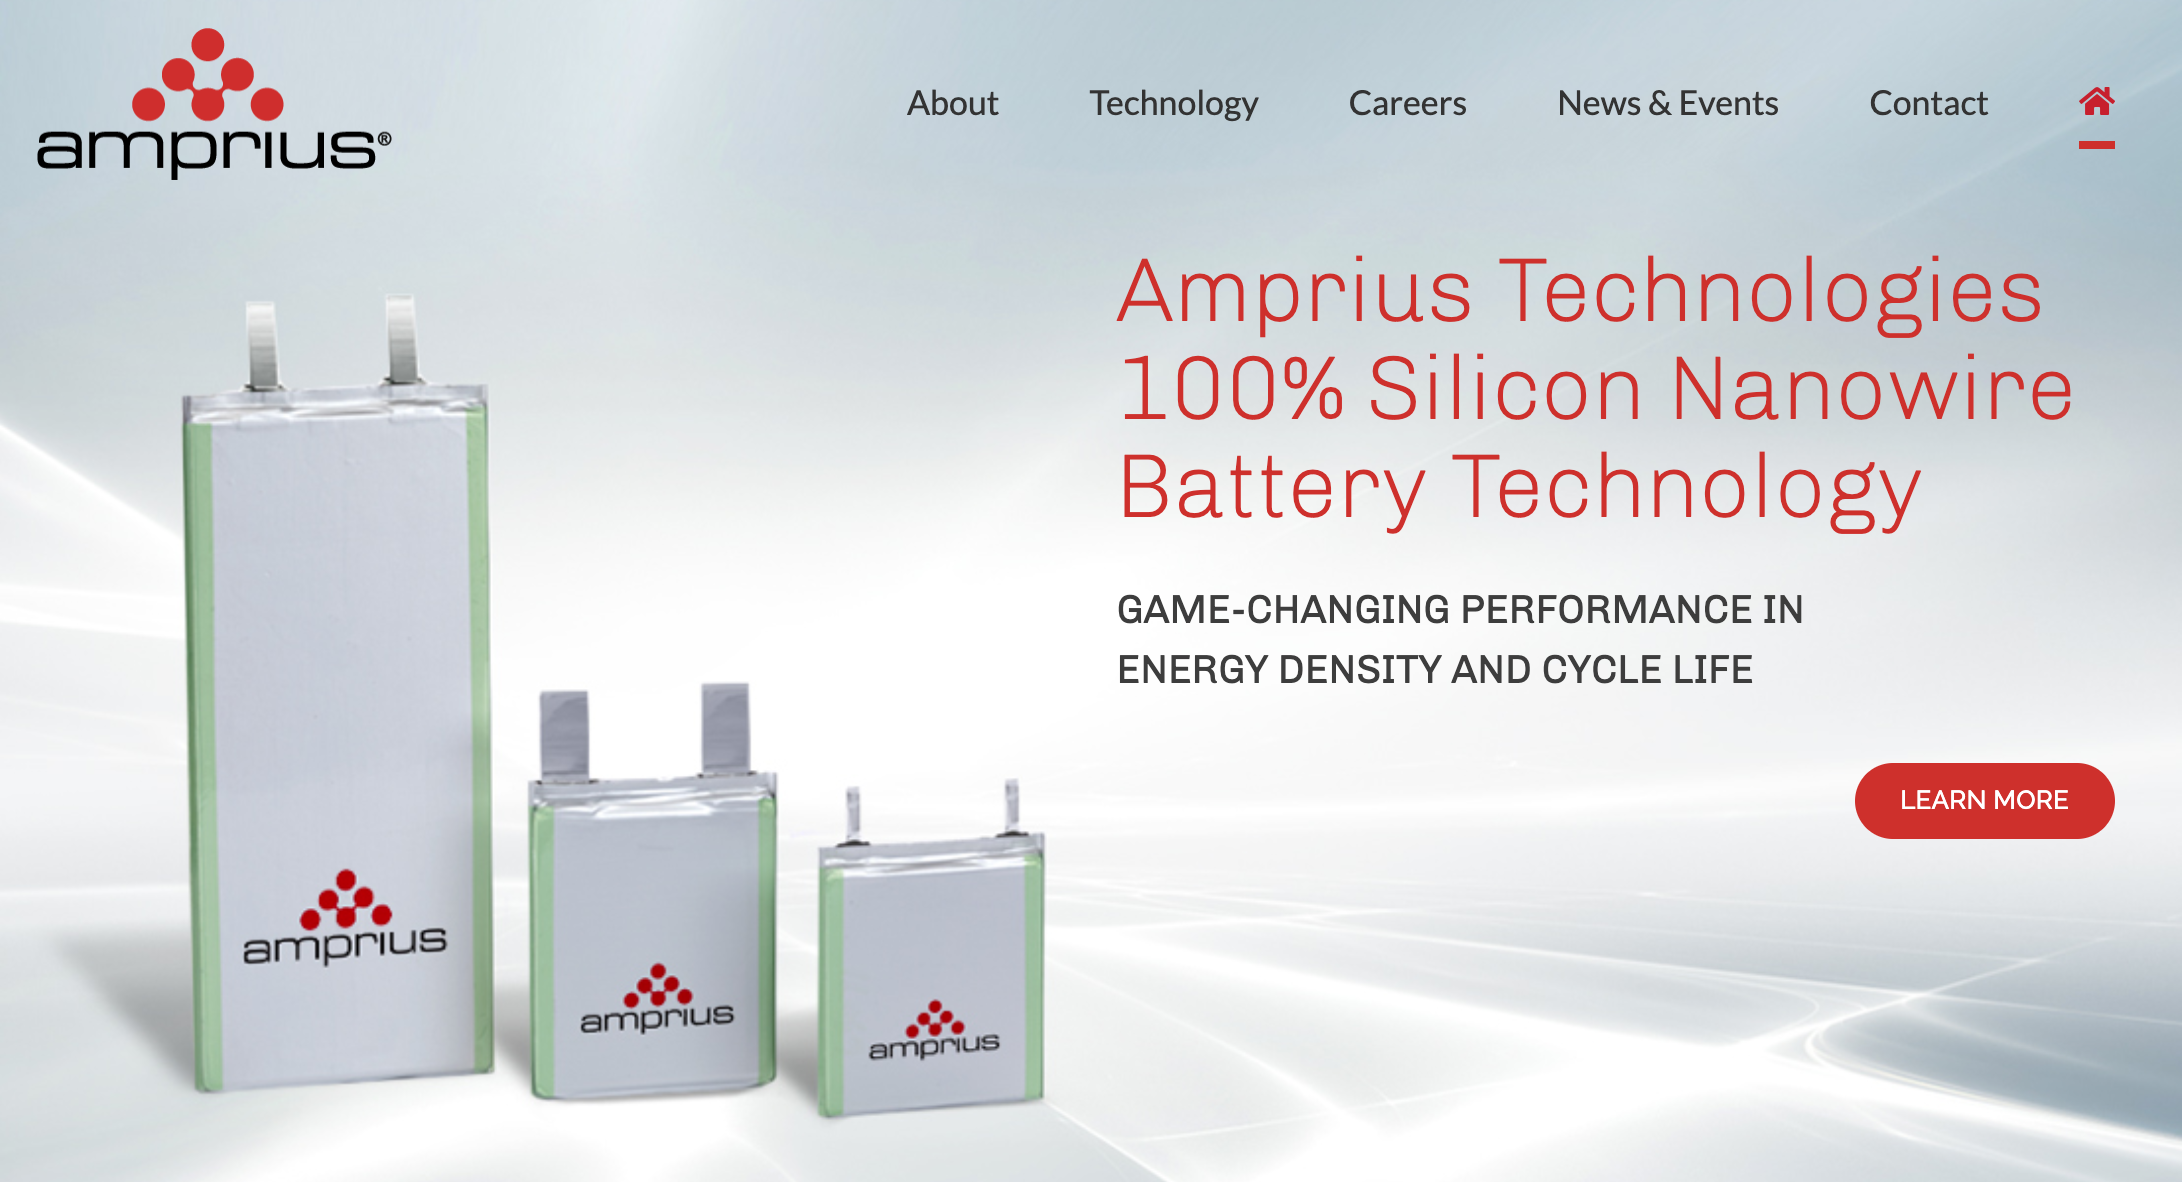 Amprius silicon nanowire battery technology